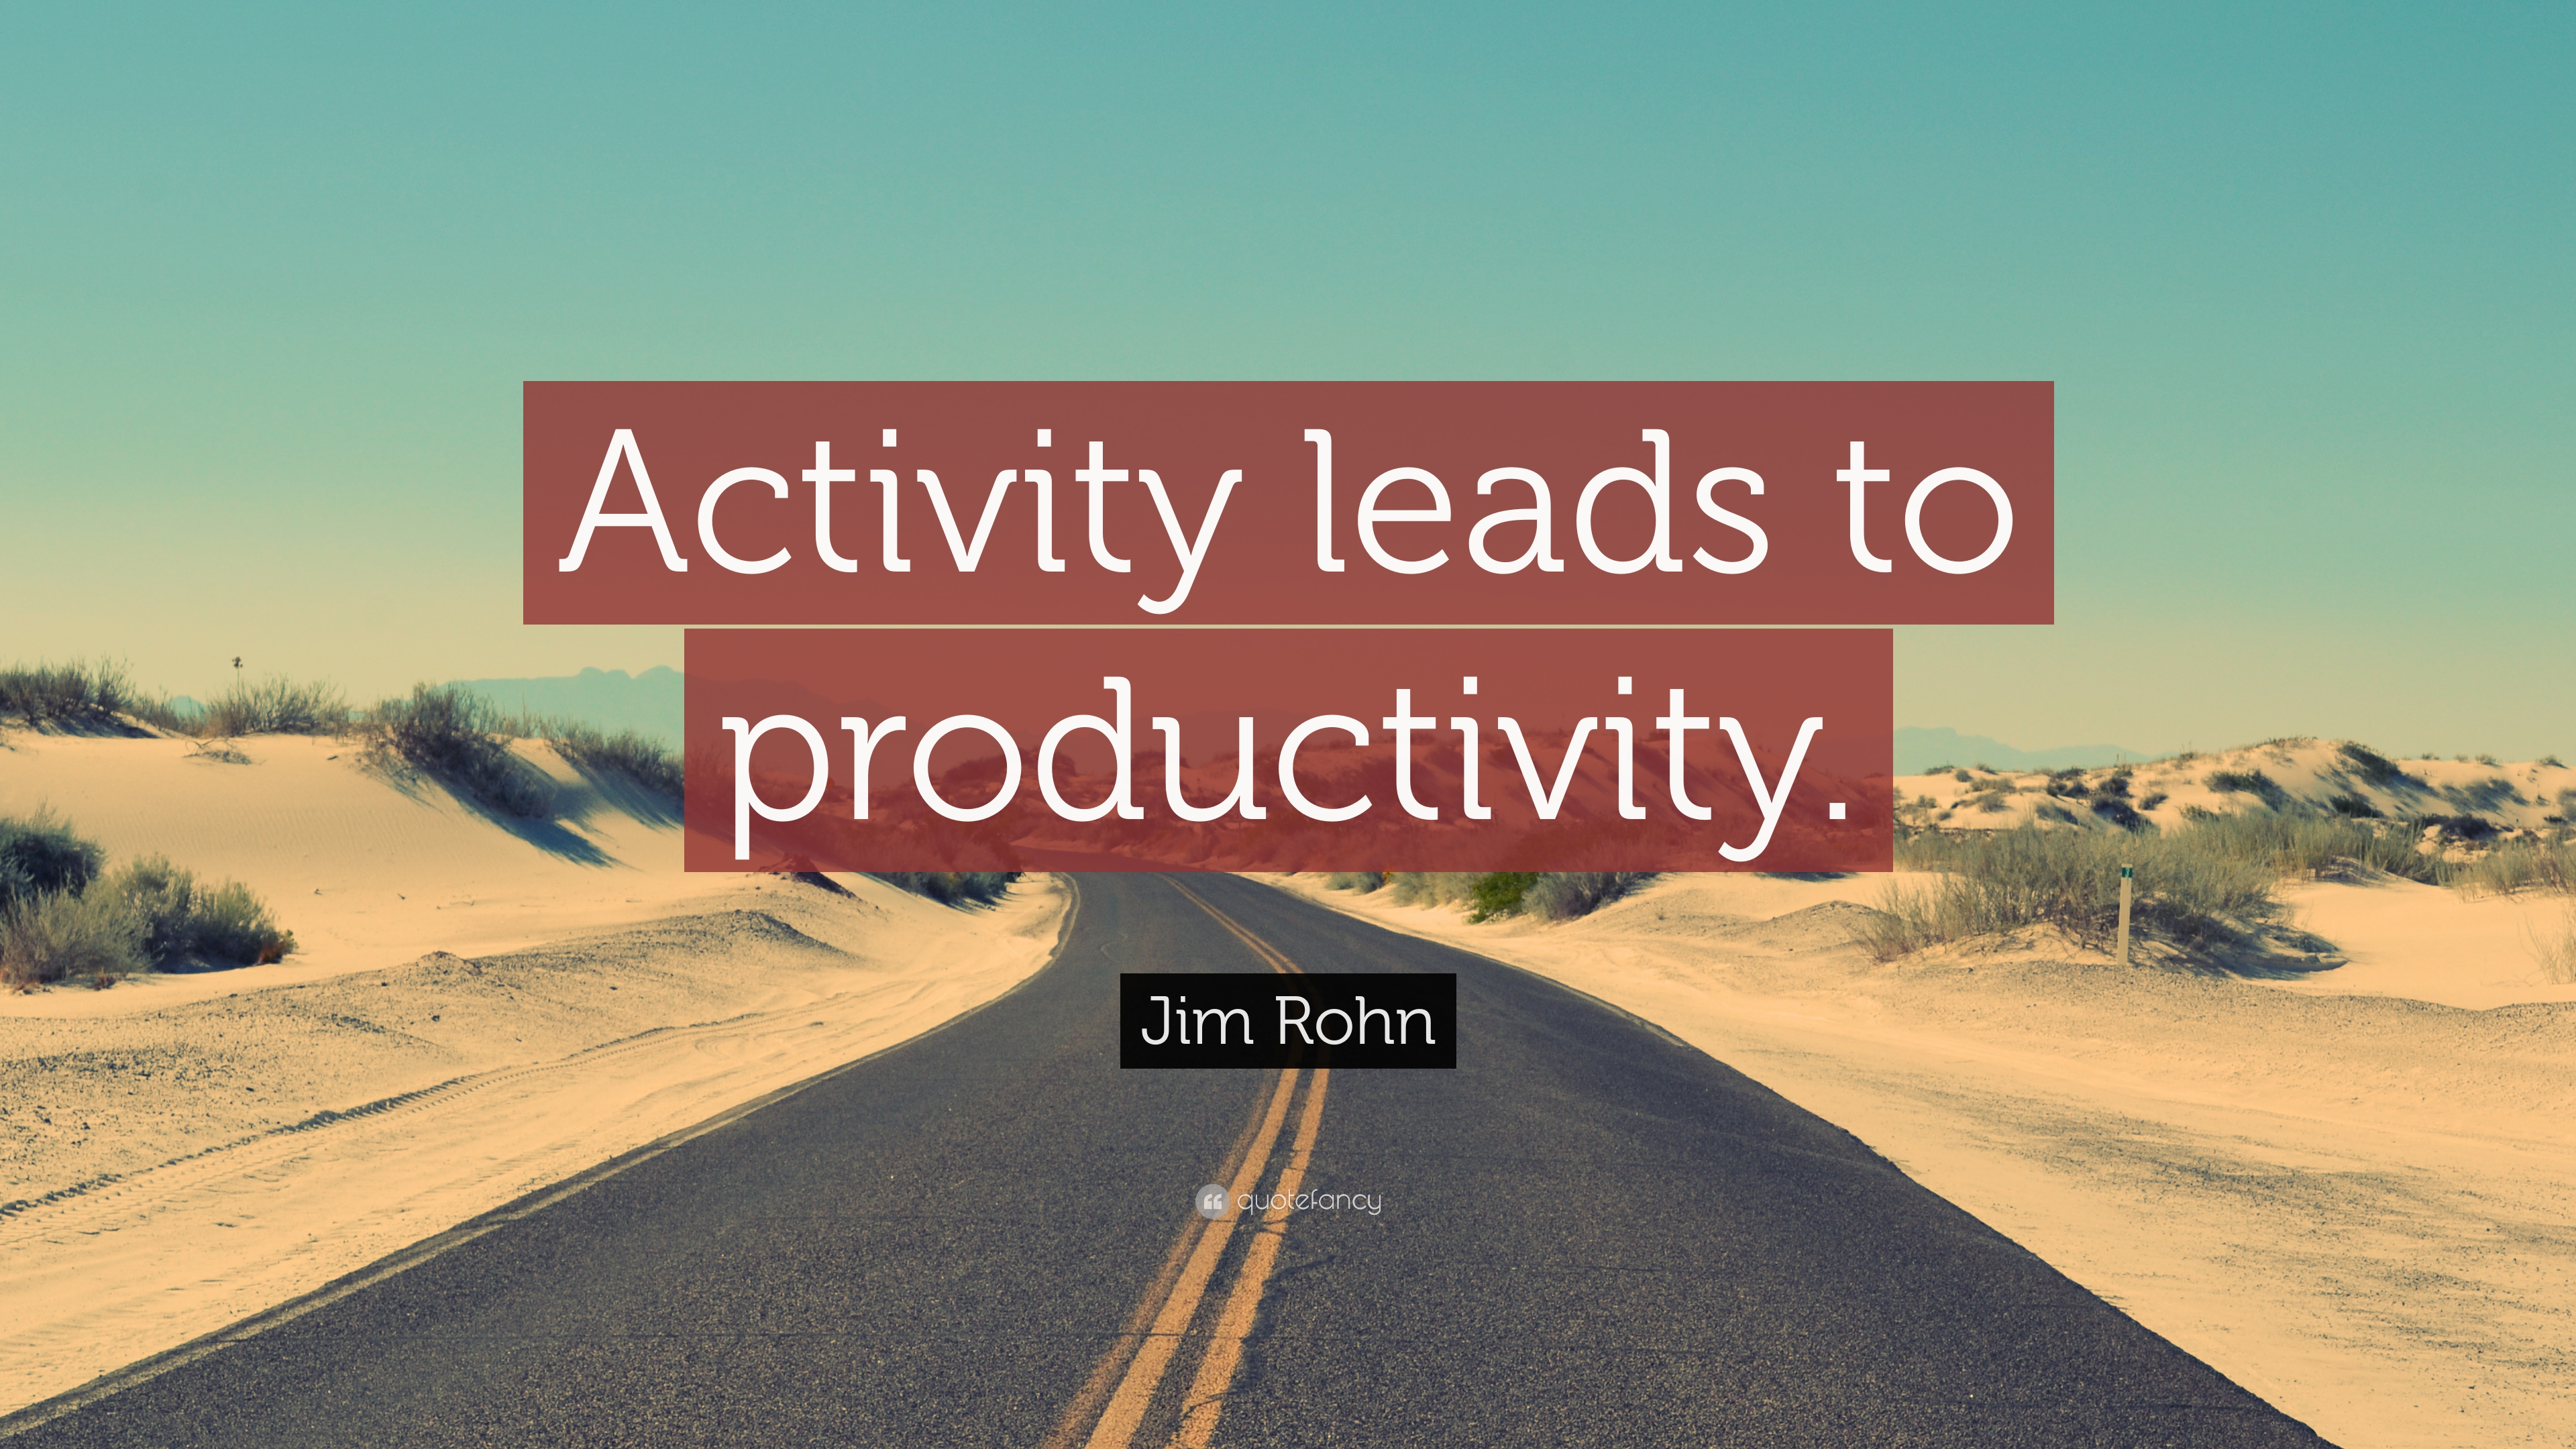 Productivity Quotes (33 wallpapers) - Quotefancy